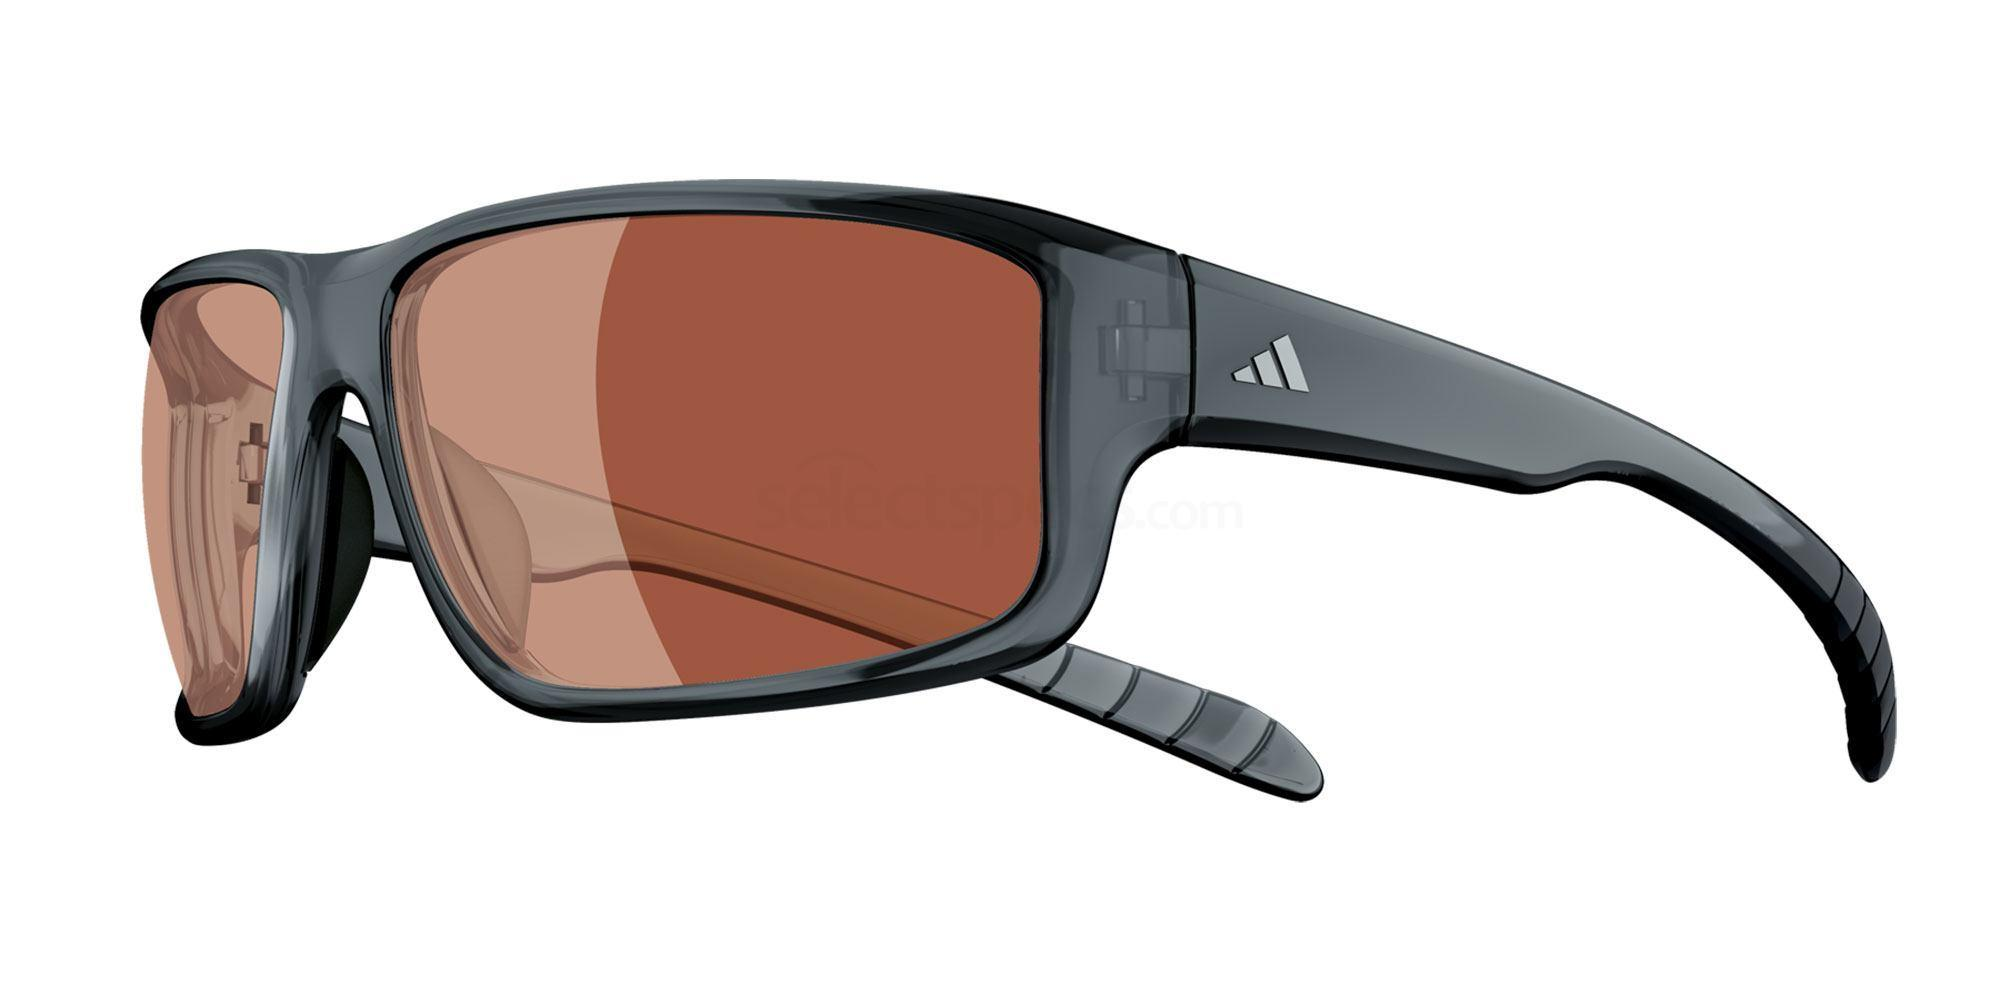 Adidas_Golf_Sunglasses